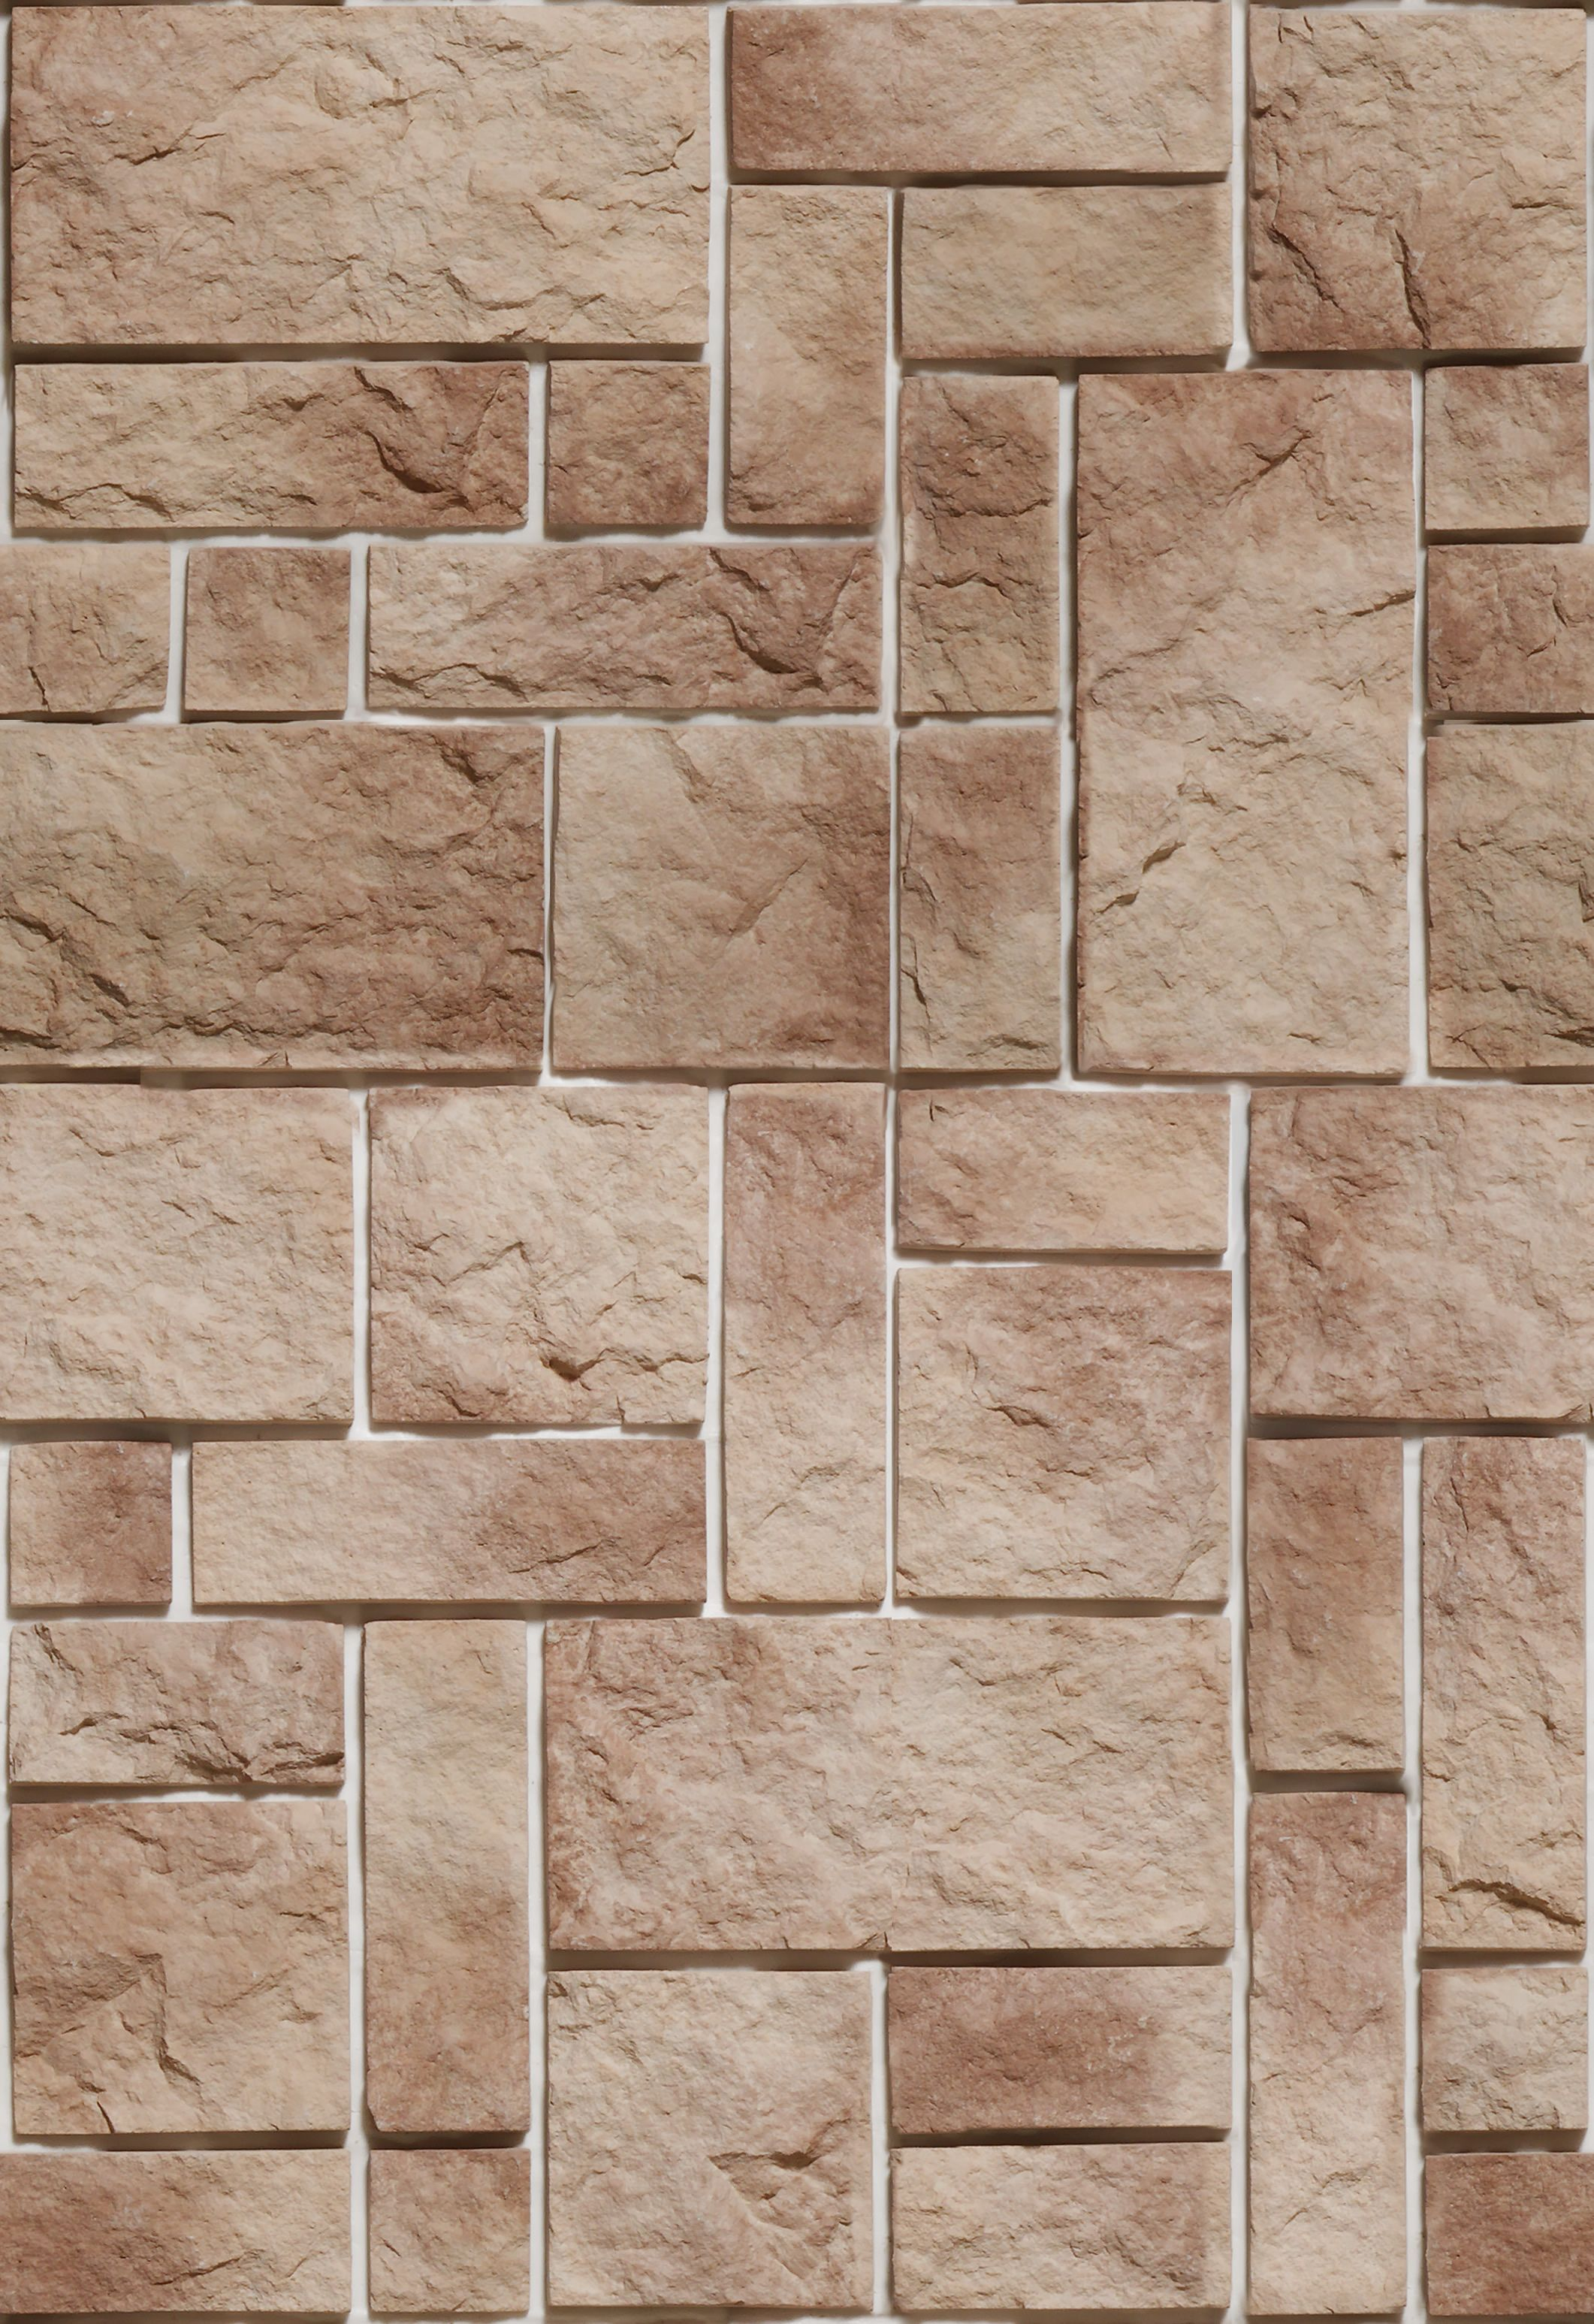 Stone Wall Tile Texture